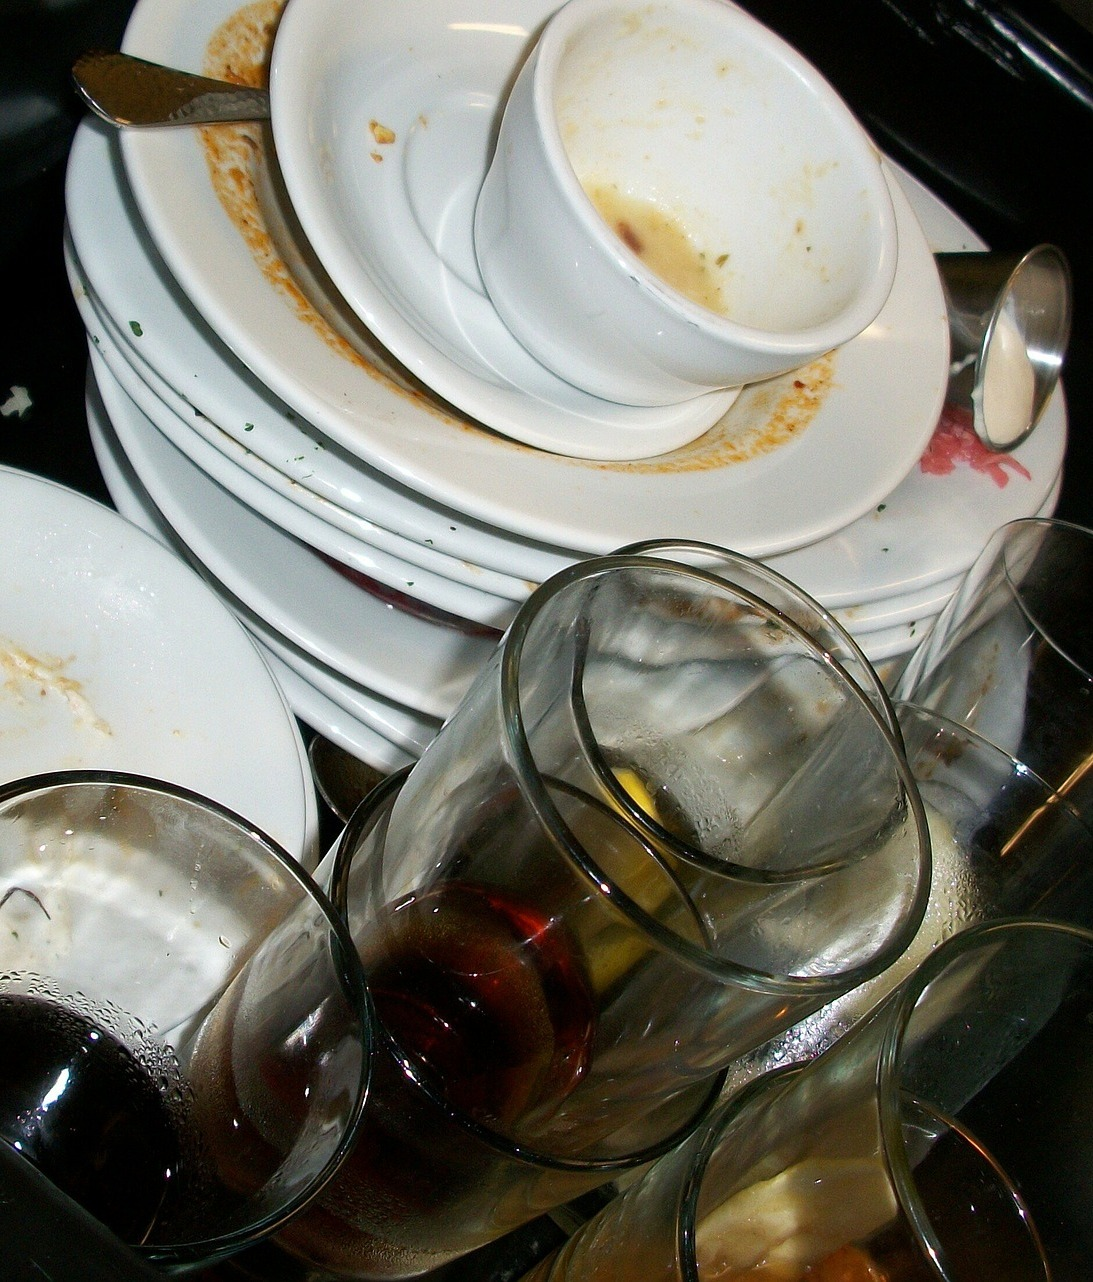 Dirty dishes.